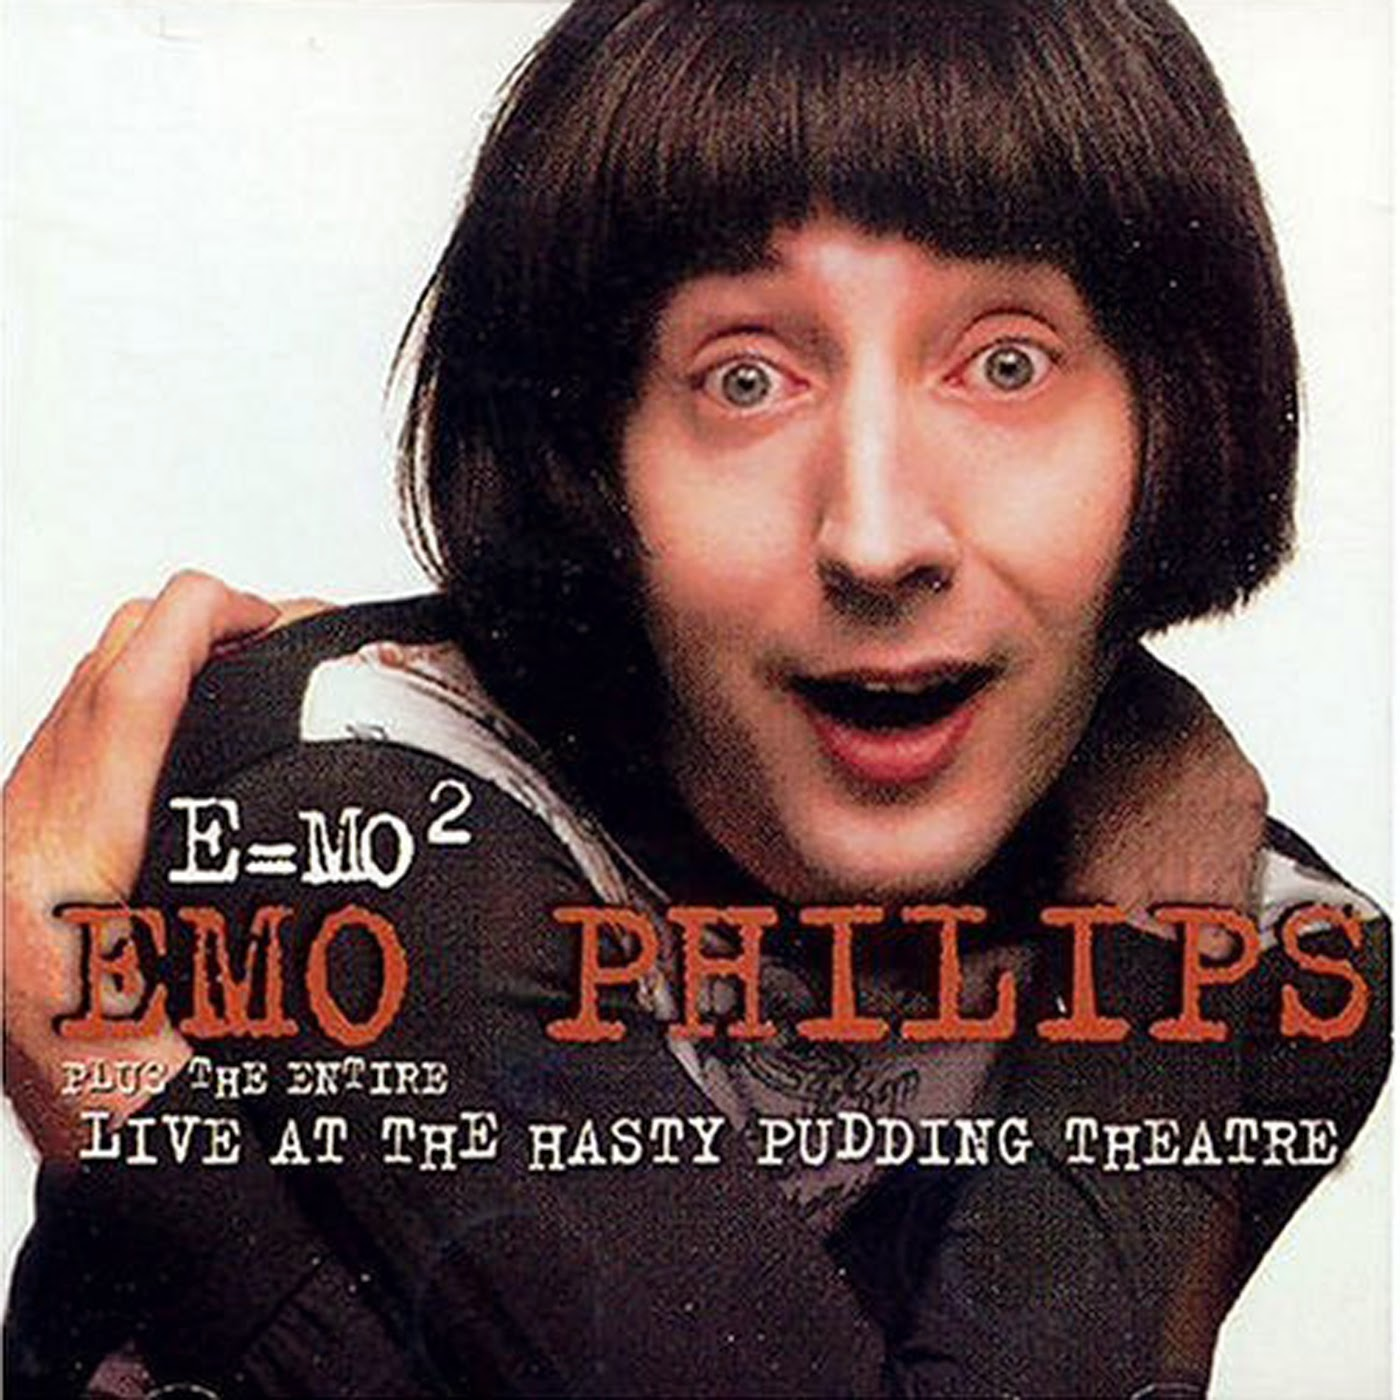 vintage stand up comedy emo philips e mo plus live at the emo philips e mo2 plus live at the hasty pudding theatre 2003